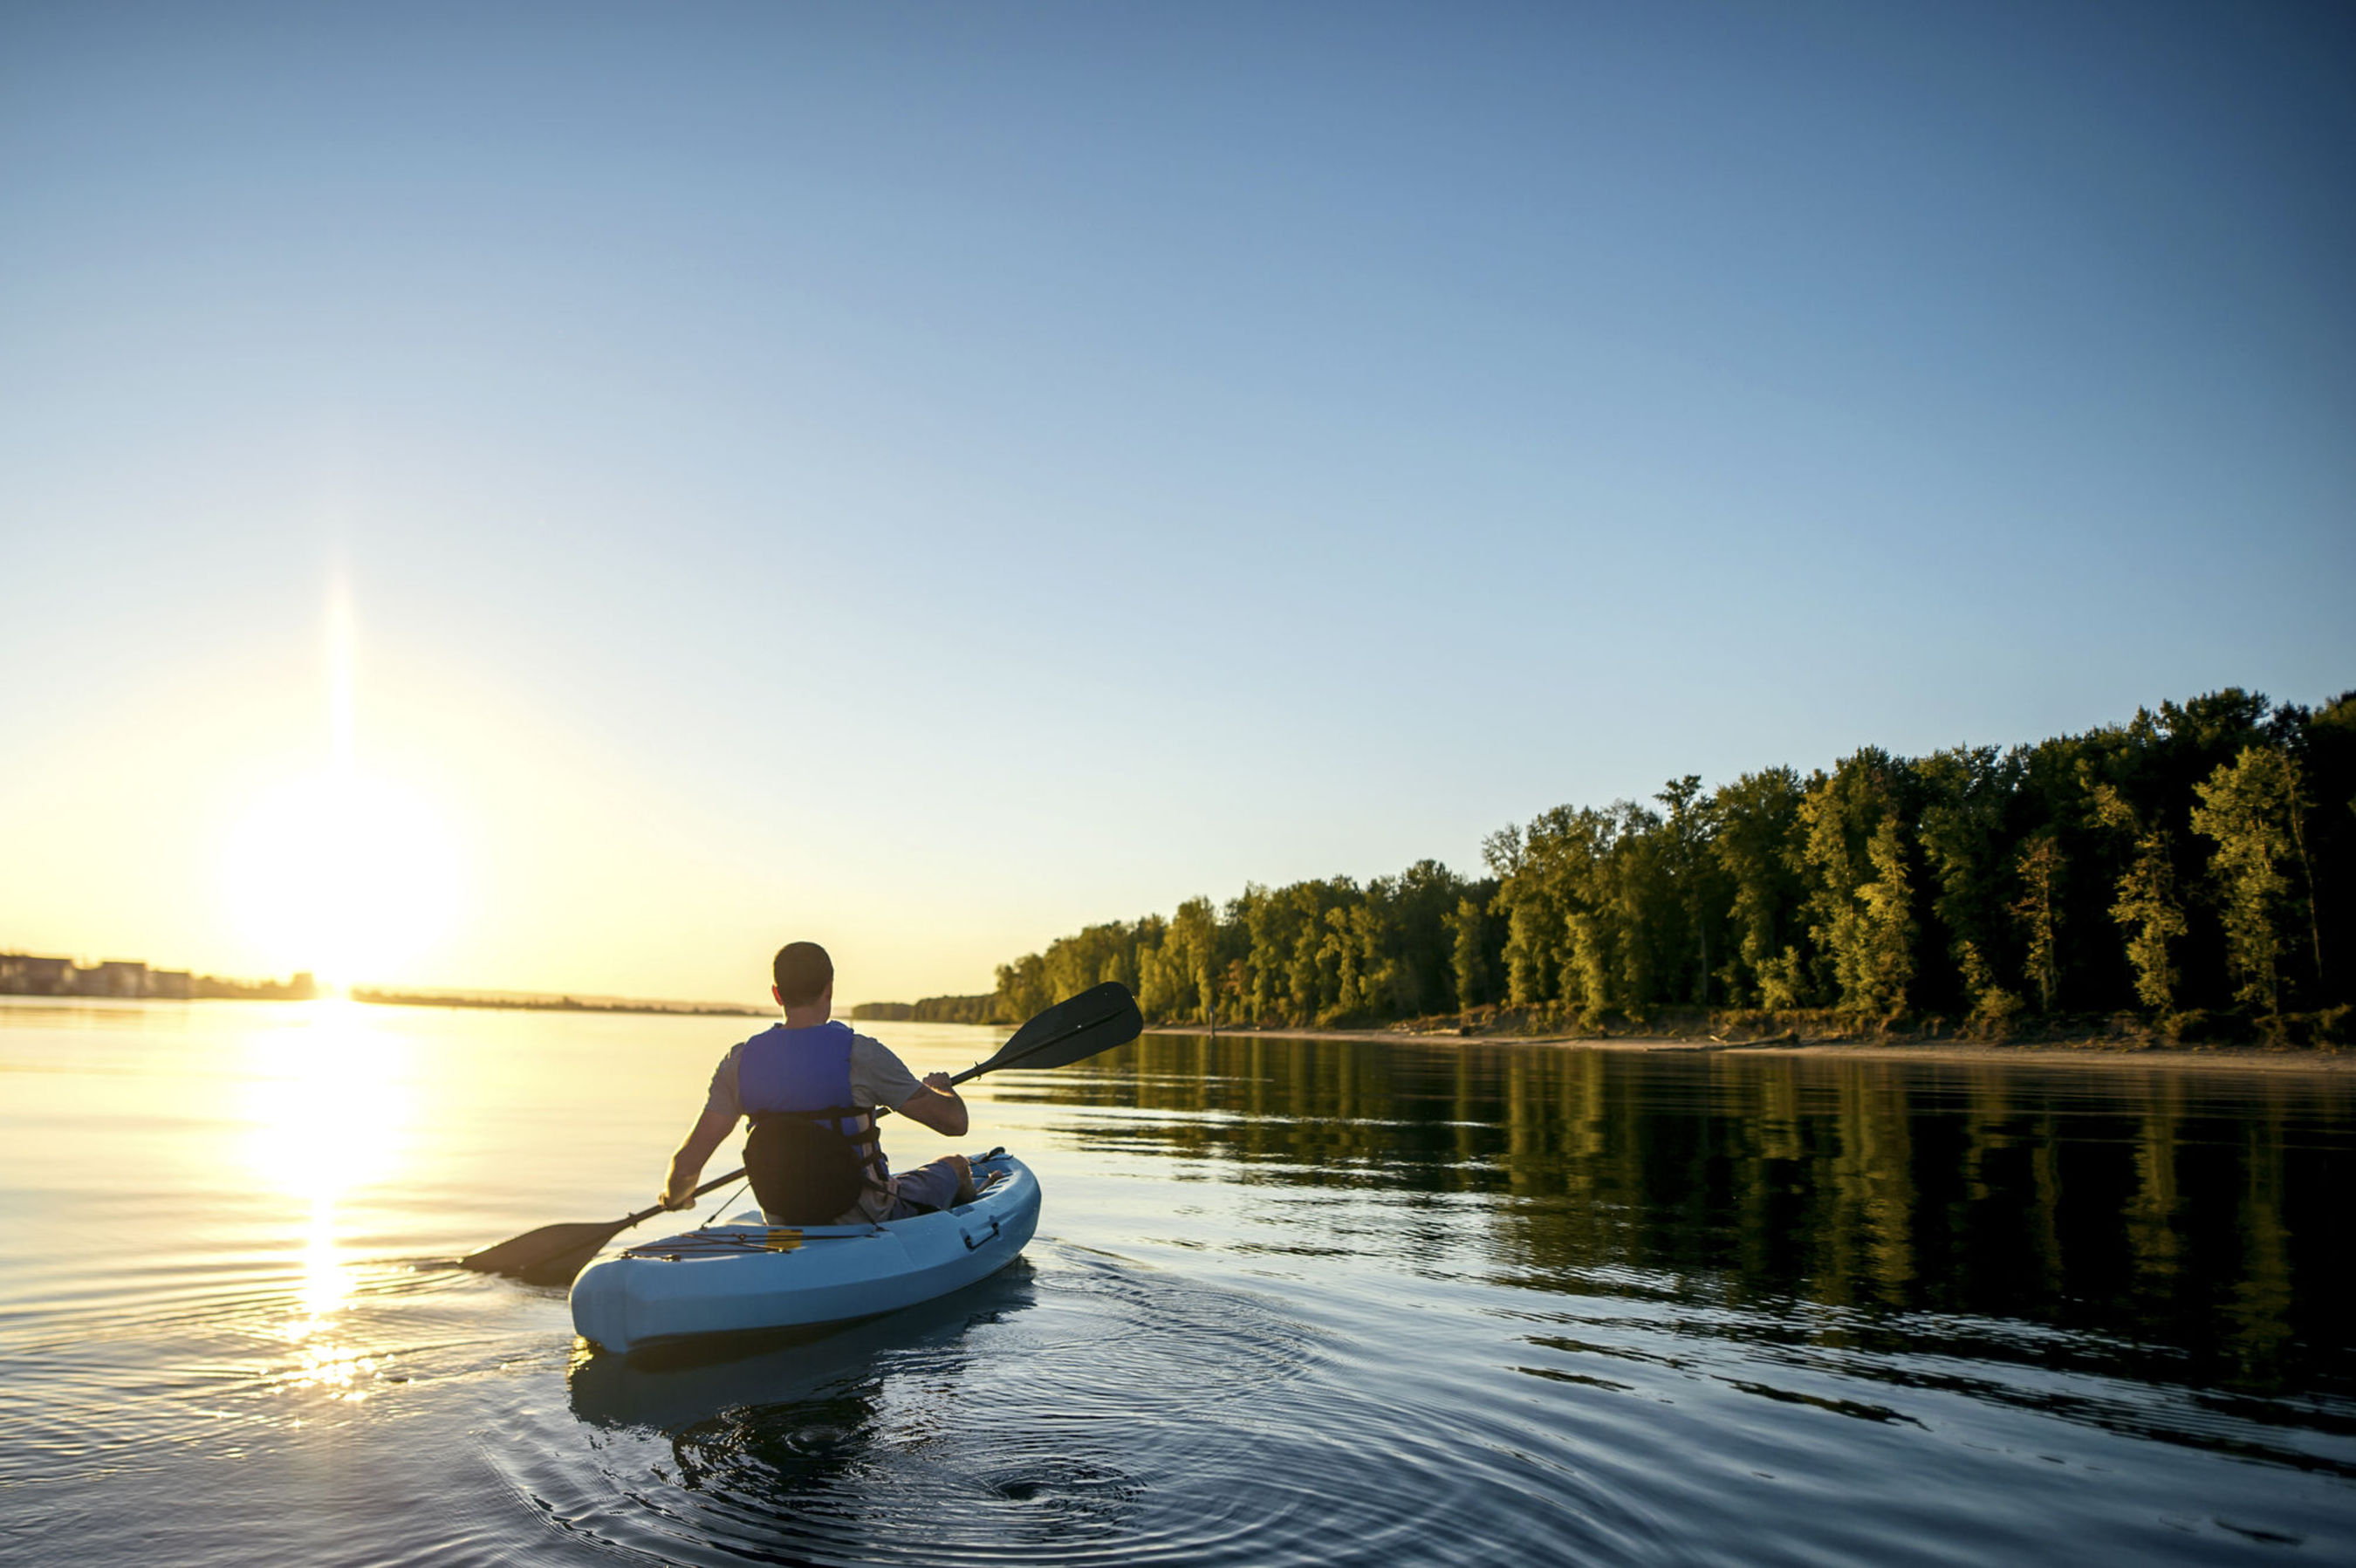 Image of man floating on water, sitting inside of a kayak and holding an oar.